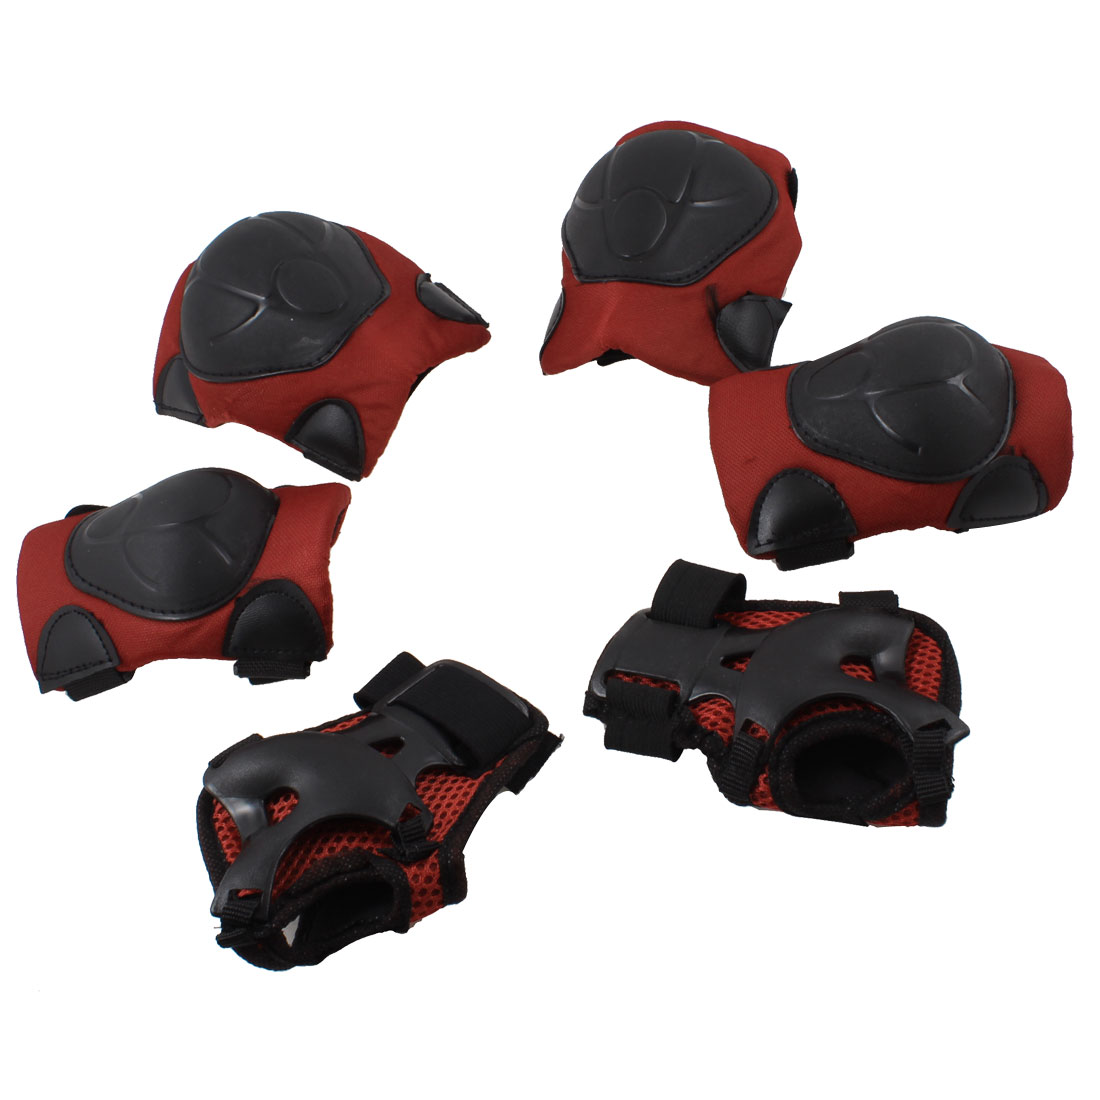 Roller Skating Knee Palm Elbow Guard Support Pad Red Black 6 in 1 Set for Kids